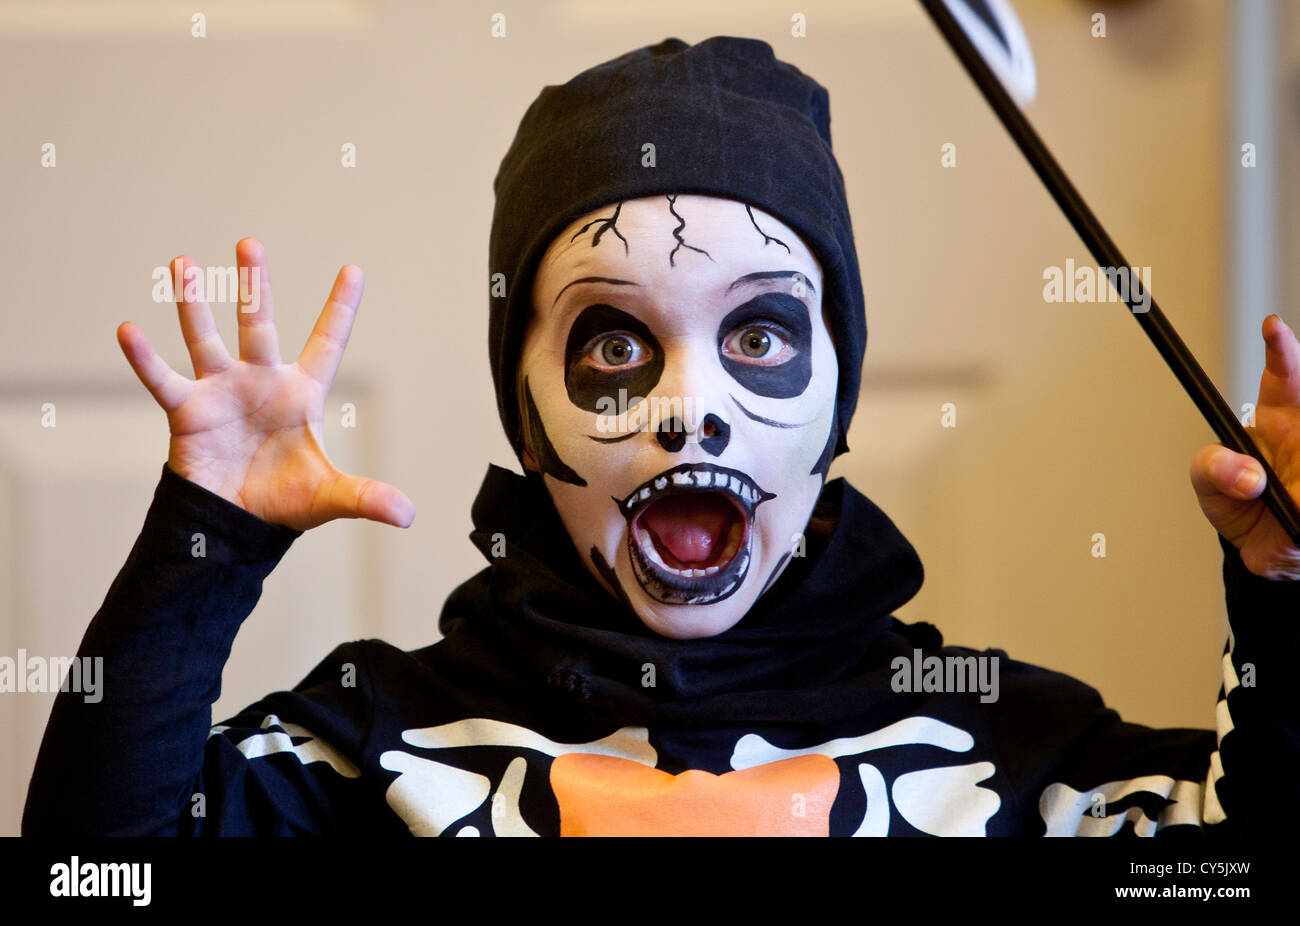 skeleton face paint stock photos & skeleton face paint stock images